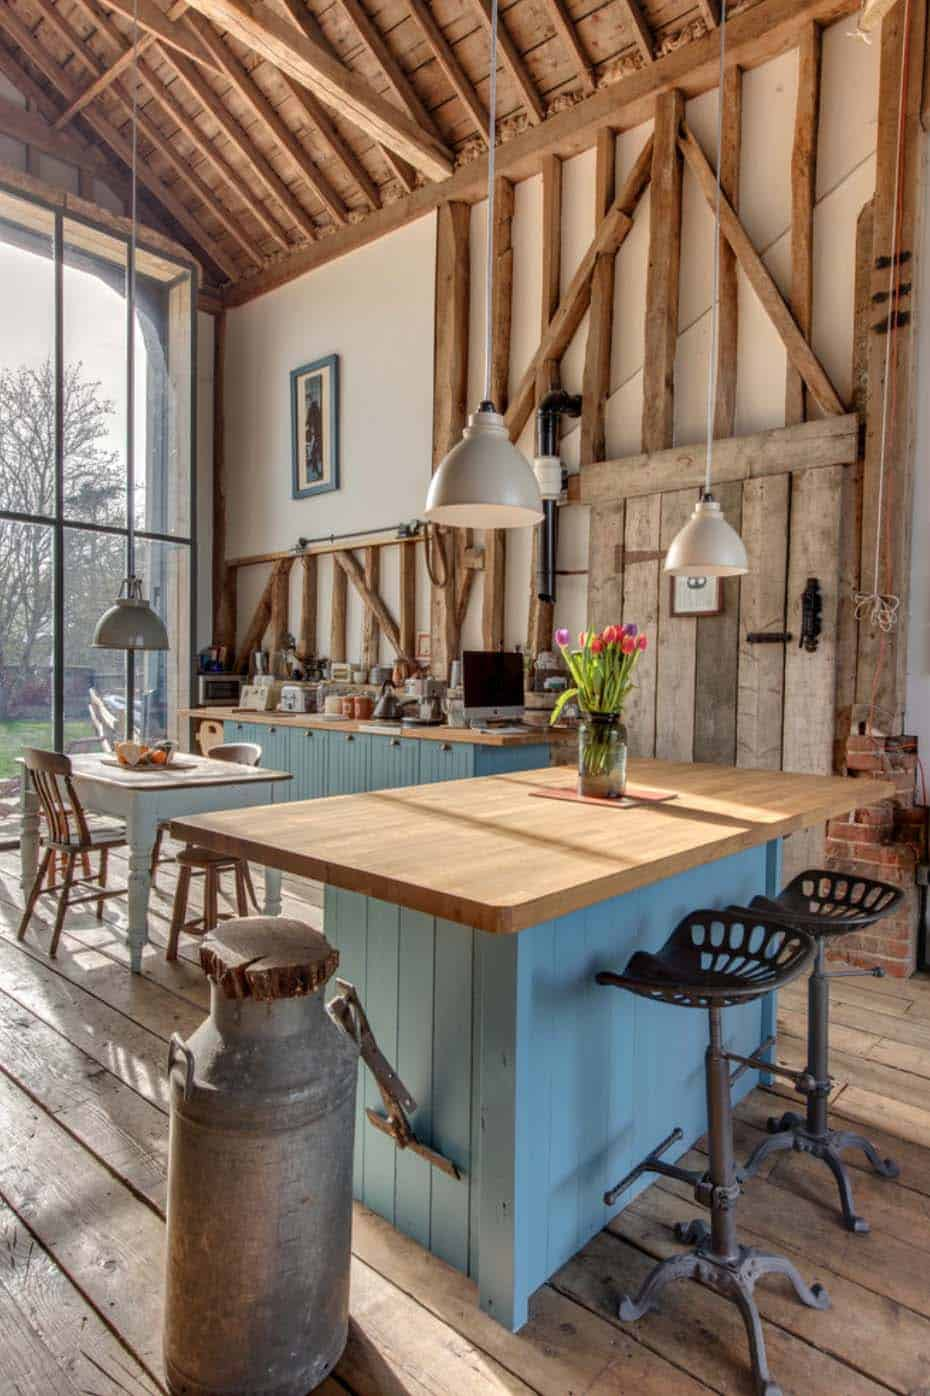 Amazing Country Chic Kitchens-08-1 Kindesign